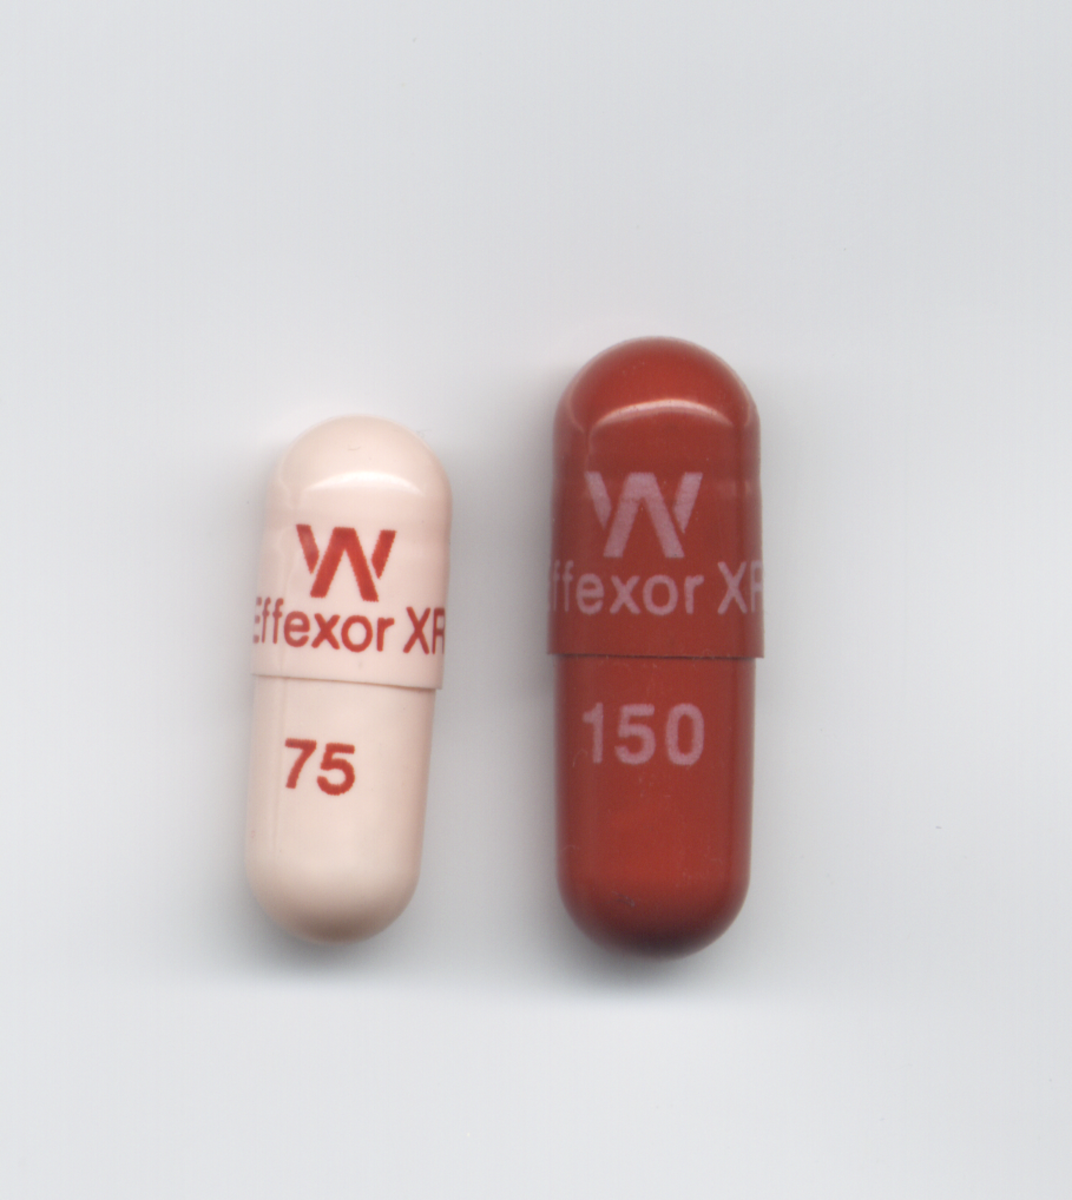 Effexor XR extended release capsules (75 mg and 150mg)